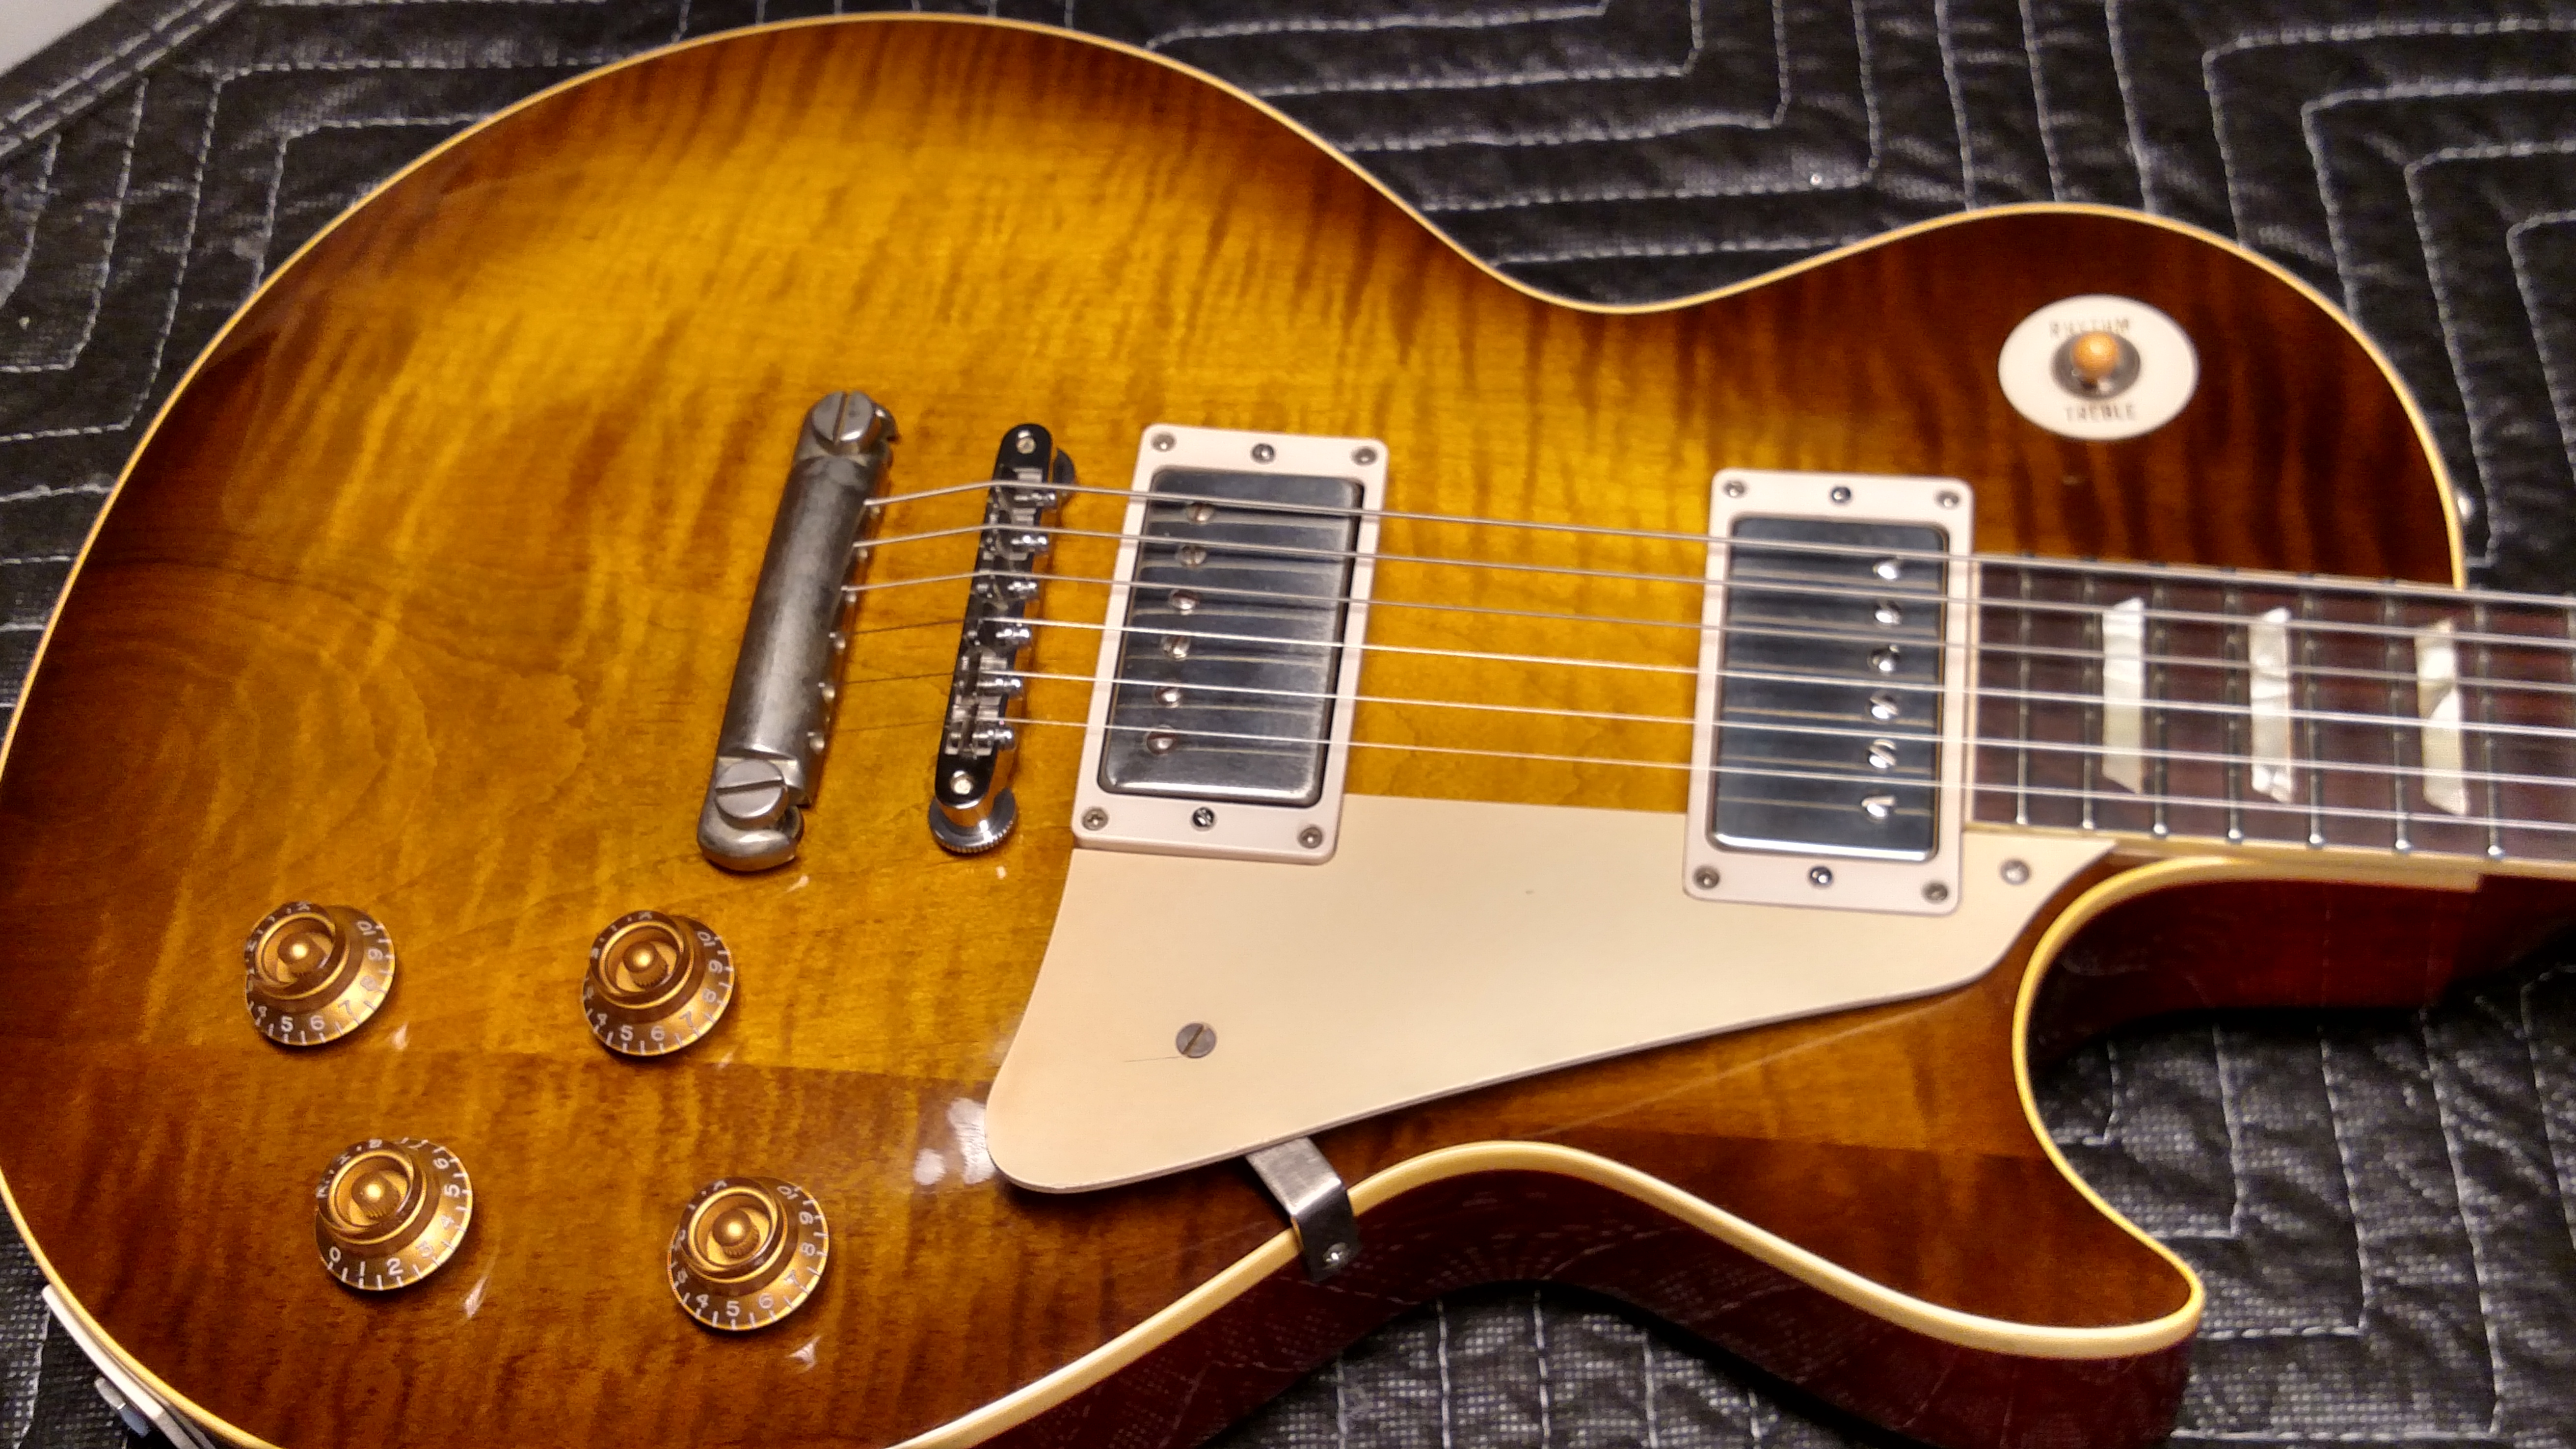 1952 1959 Gibson Les Paul Conversion Guitars Electric Semi Guitar Tone Capacitors Also Wiring Further Hollow Body Jamcity